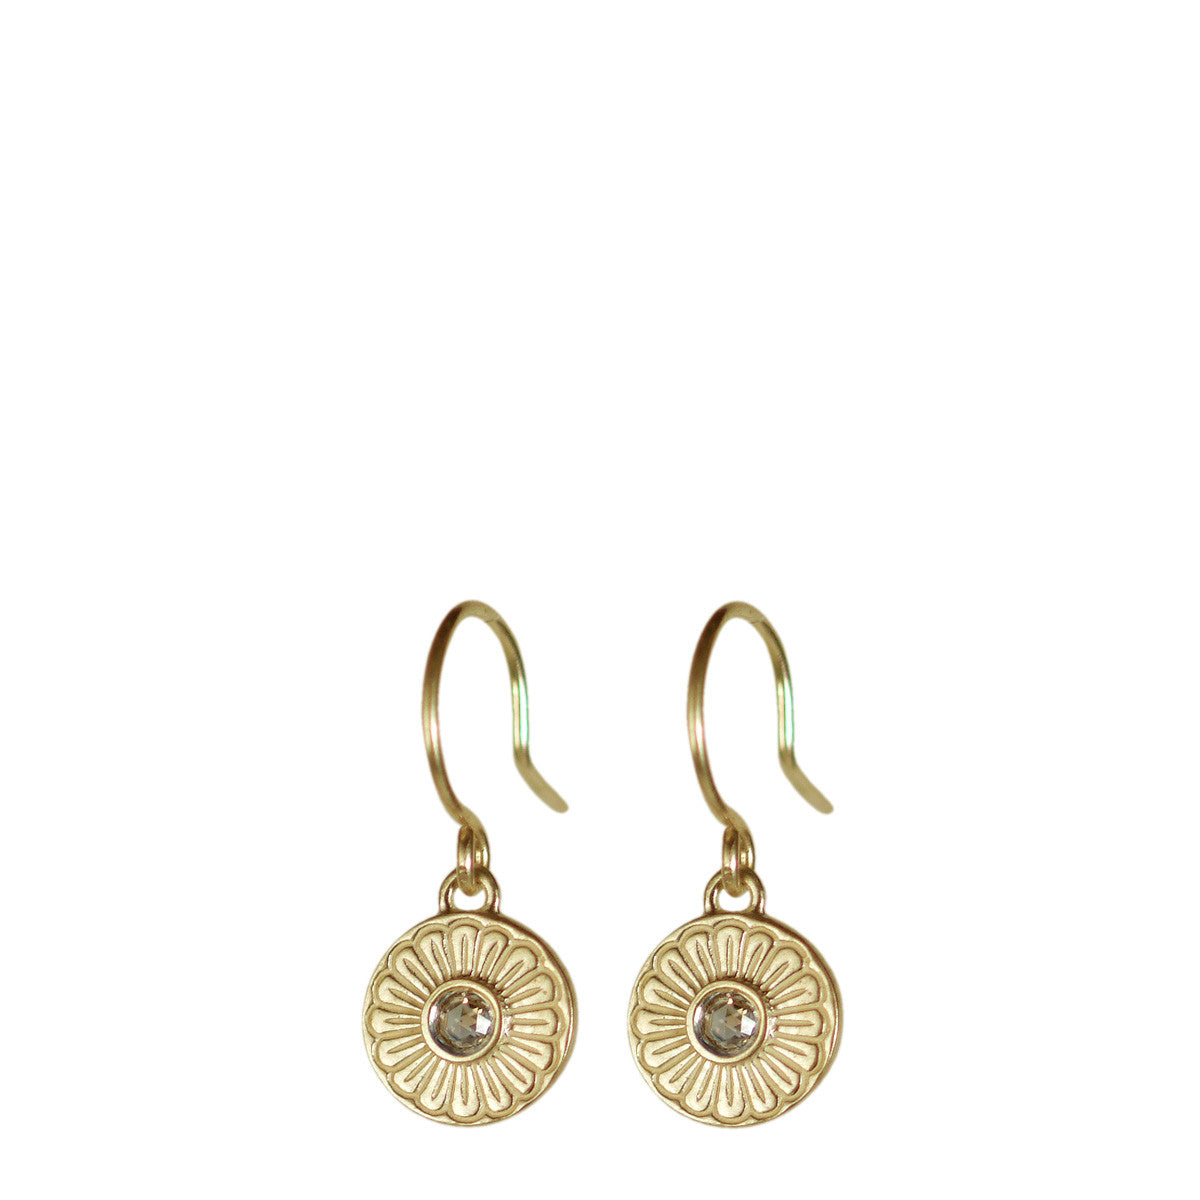 10K Gold Flower Drop Earrings with Brown Diamonds